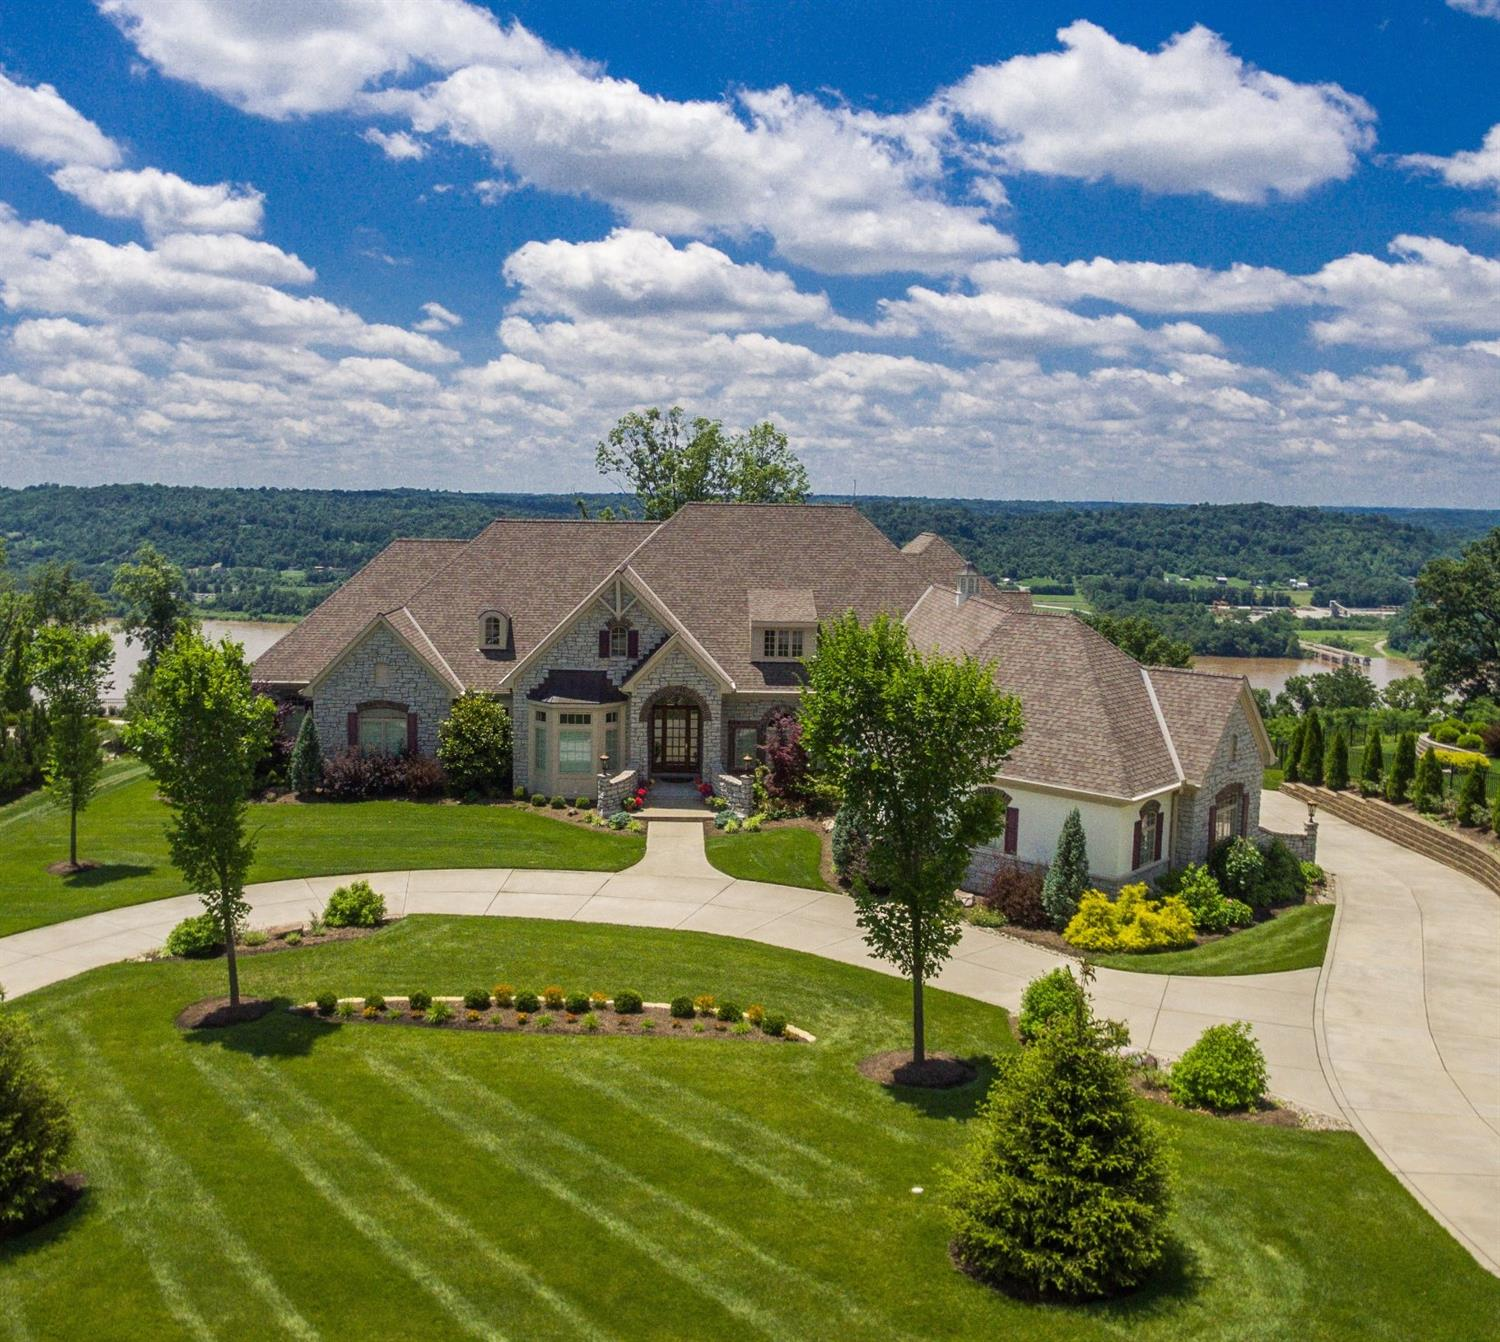 Property for sale at 7935 Ayers Road, Anderson Twp,  Ohio 45255